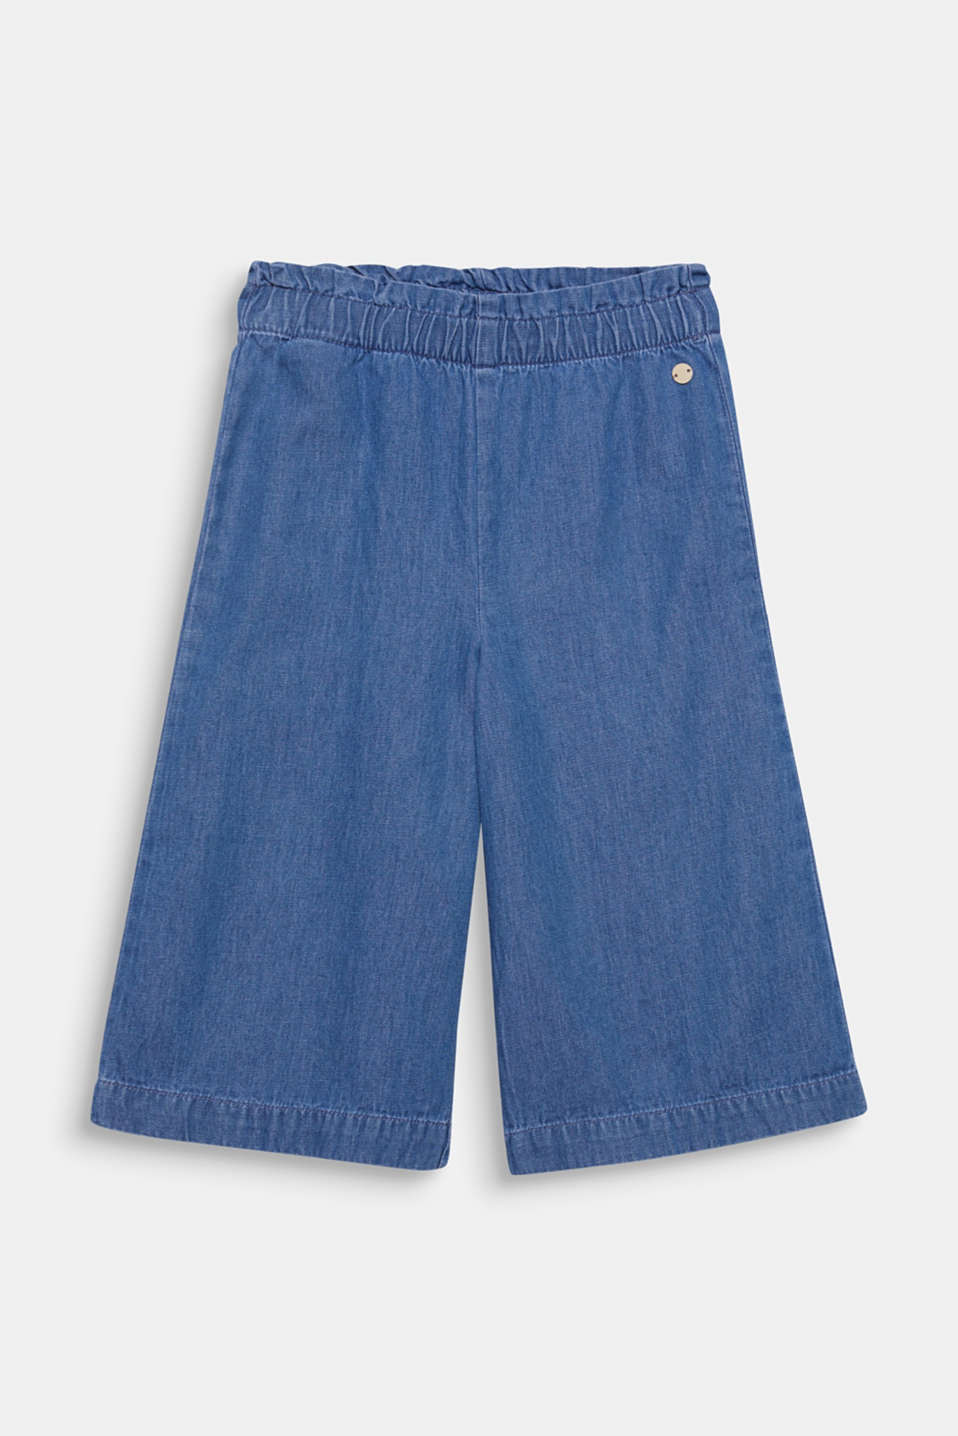 Esprit - Denim culottes with an elasticated waistband, 100% cotton